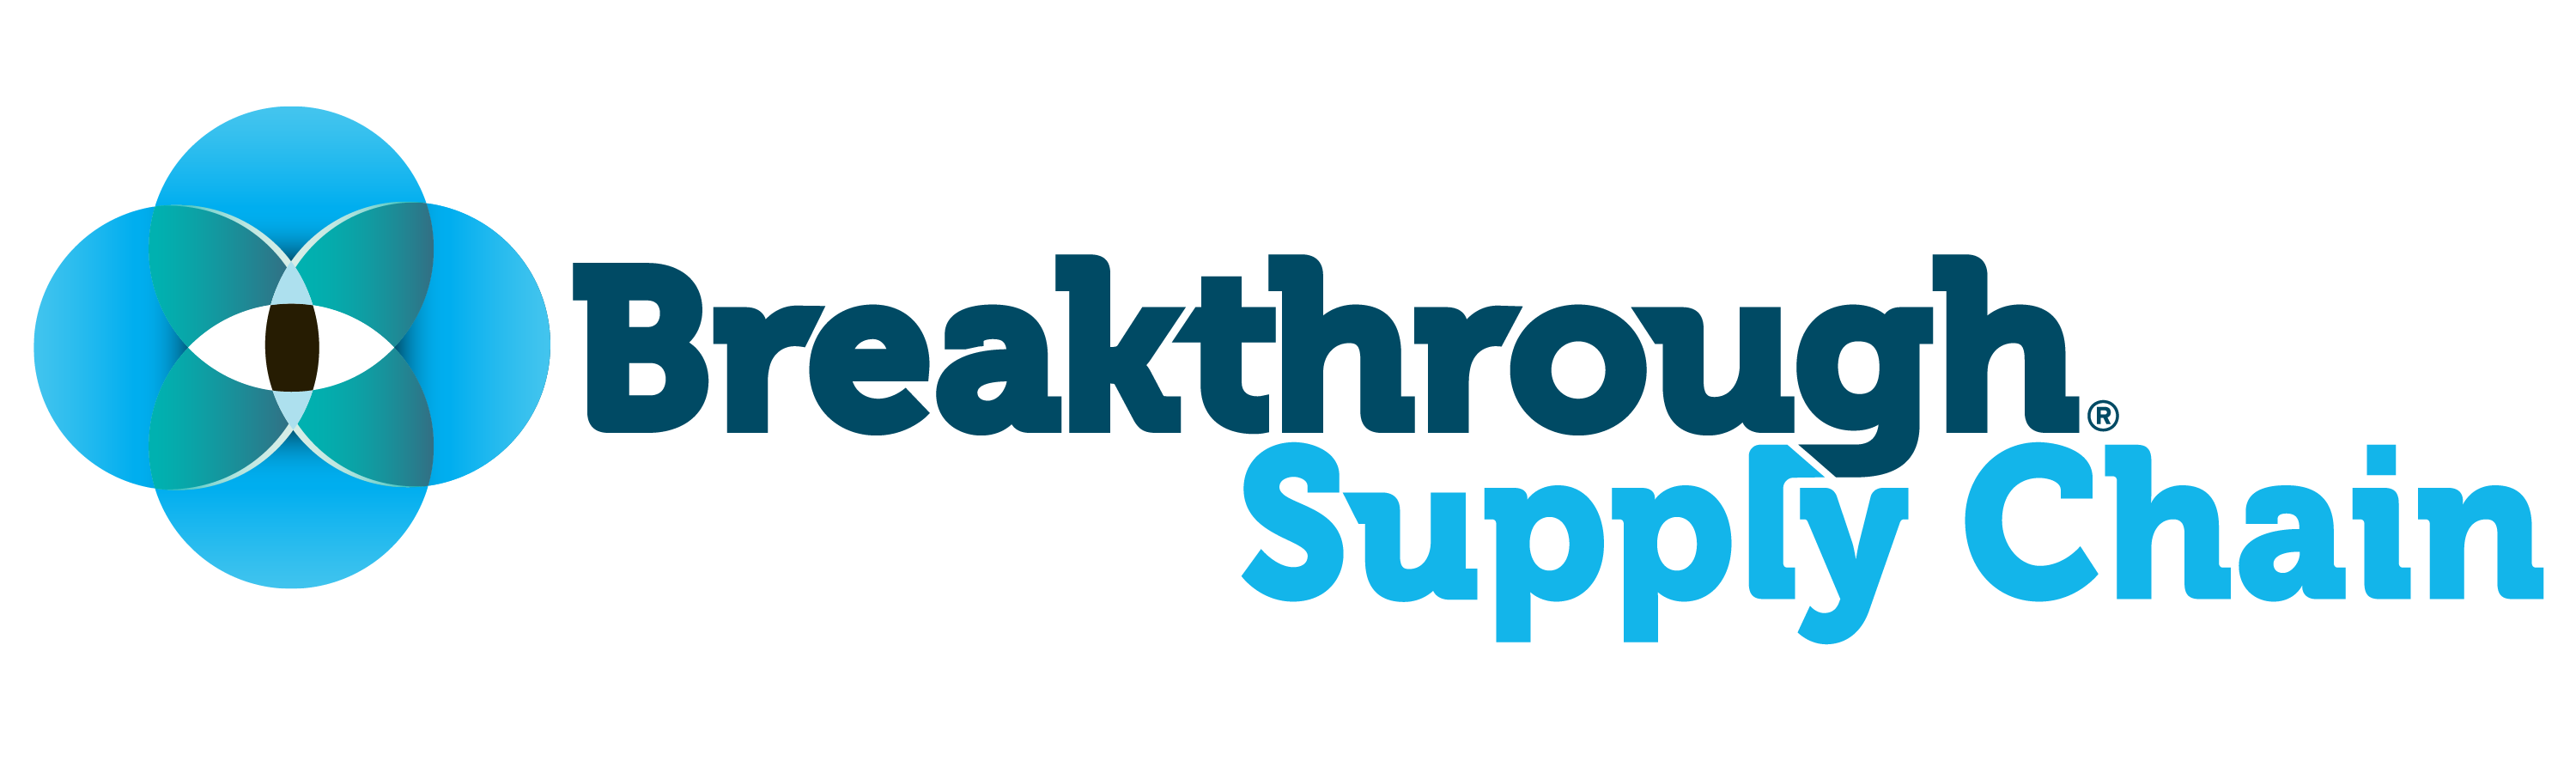 Breakthrough®Fuel Announces Launch of Breakthrough®Supply Chain